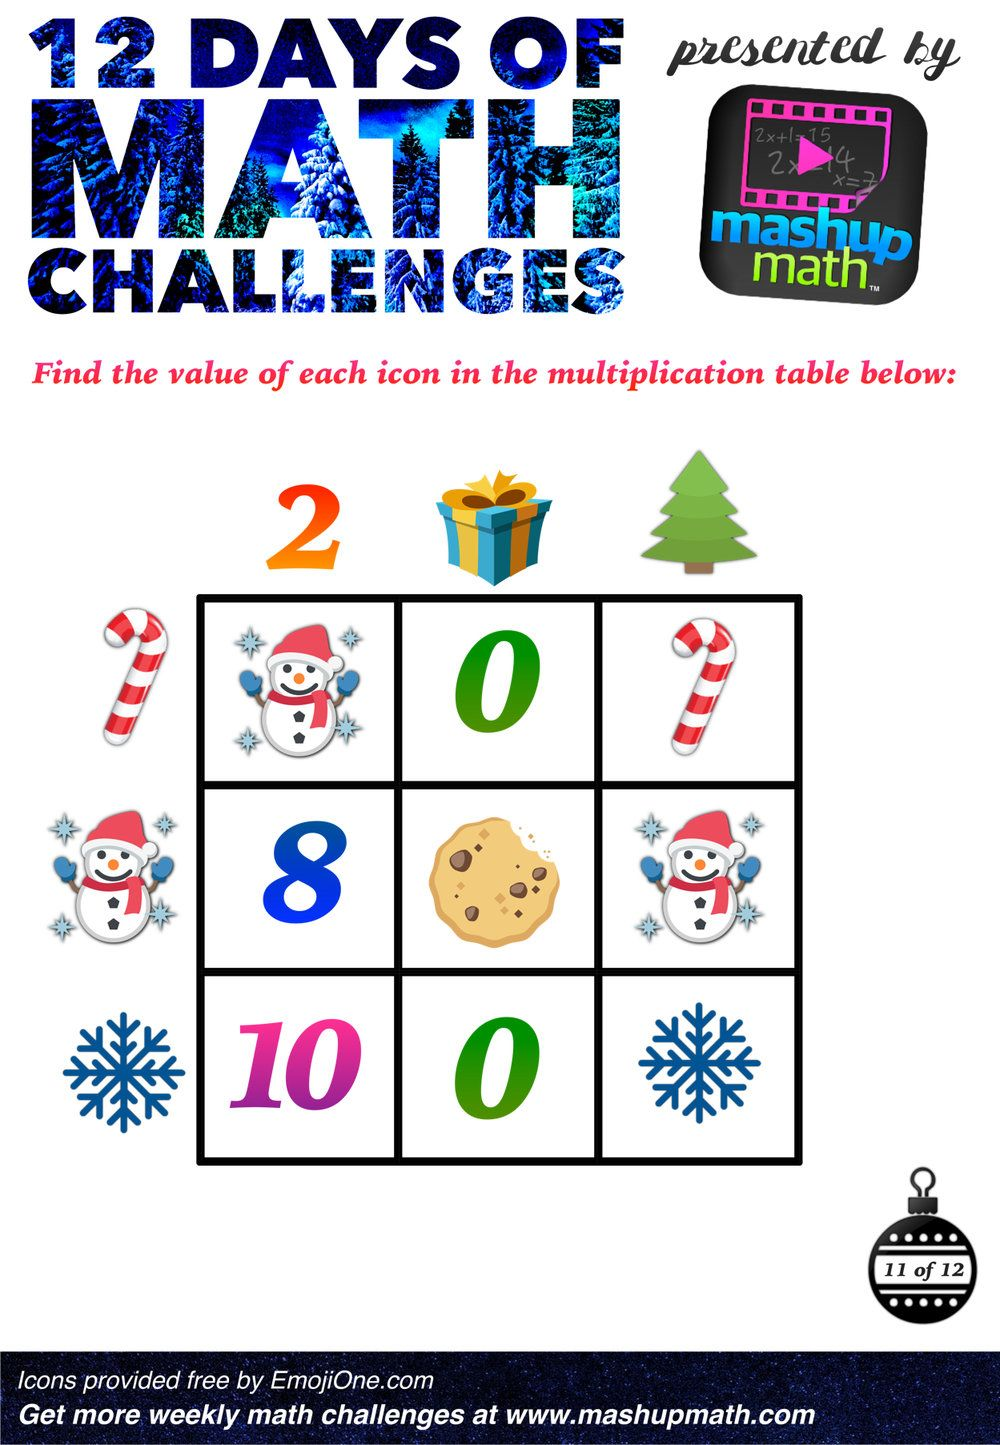 Are You Ready for 12 Days of Holiday Math Challenges? — Mashup Math   Math  challenge [ 1445 x 1000 Pixel ]